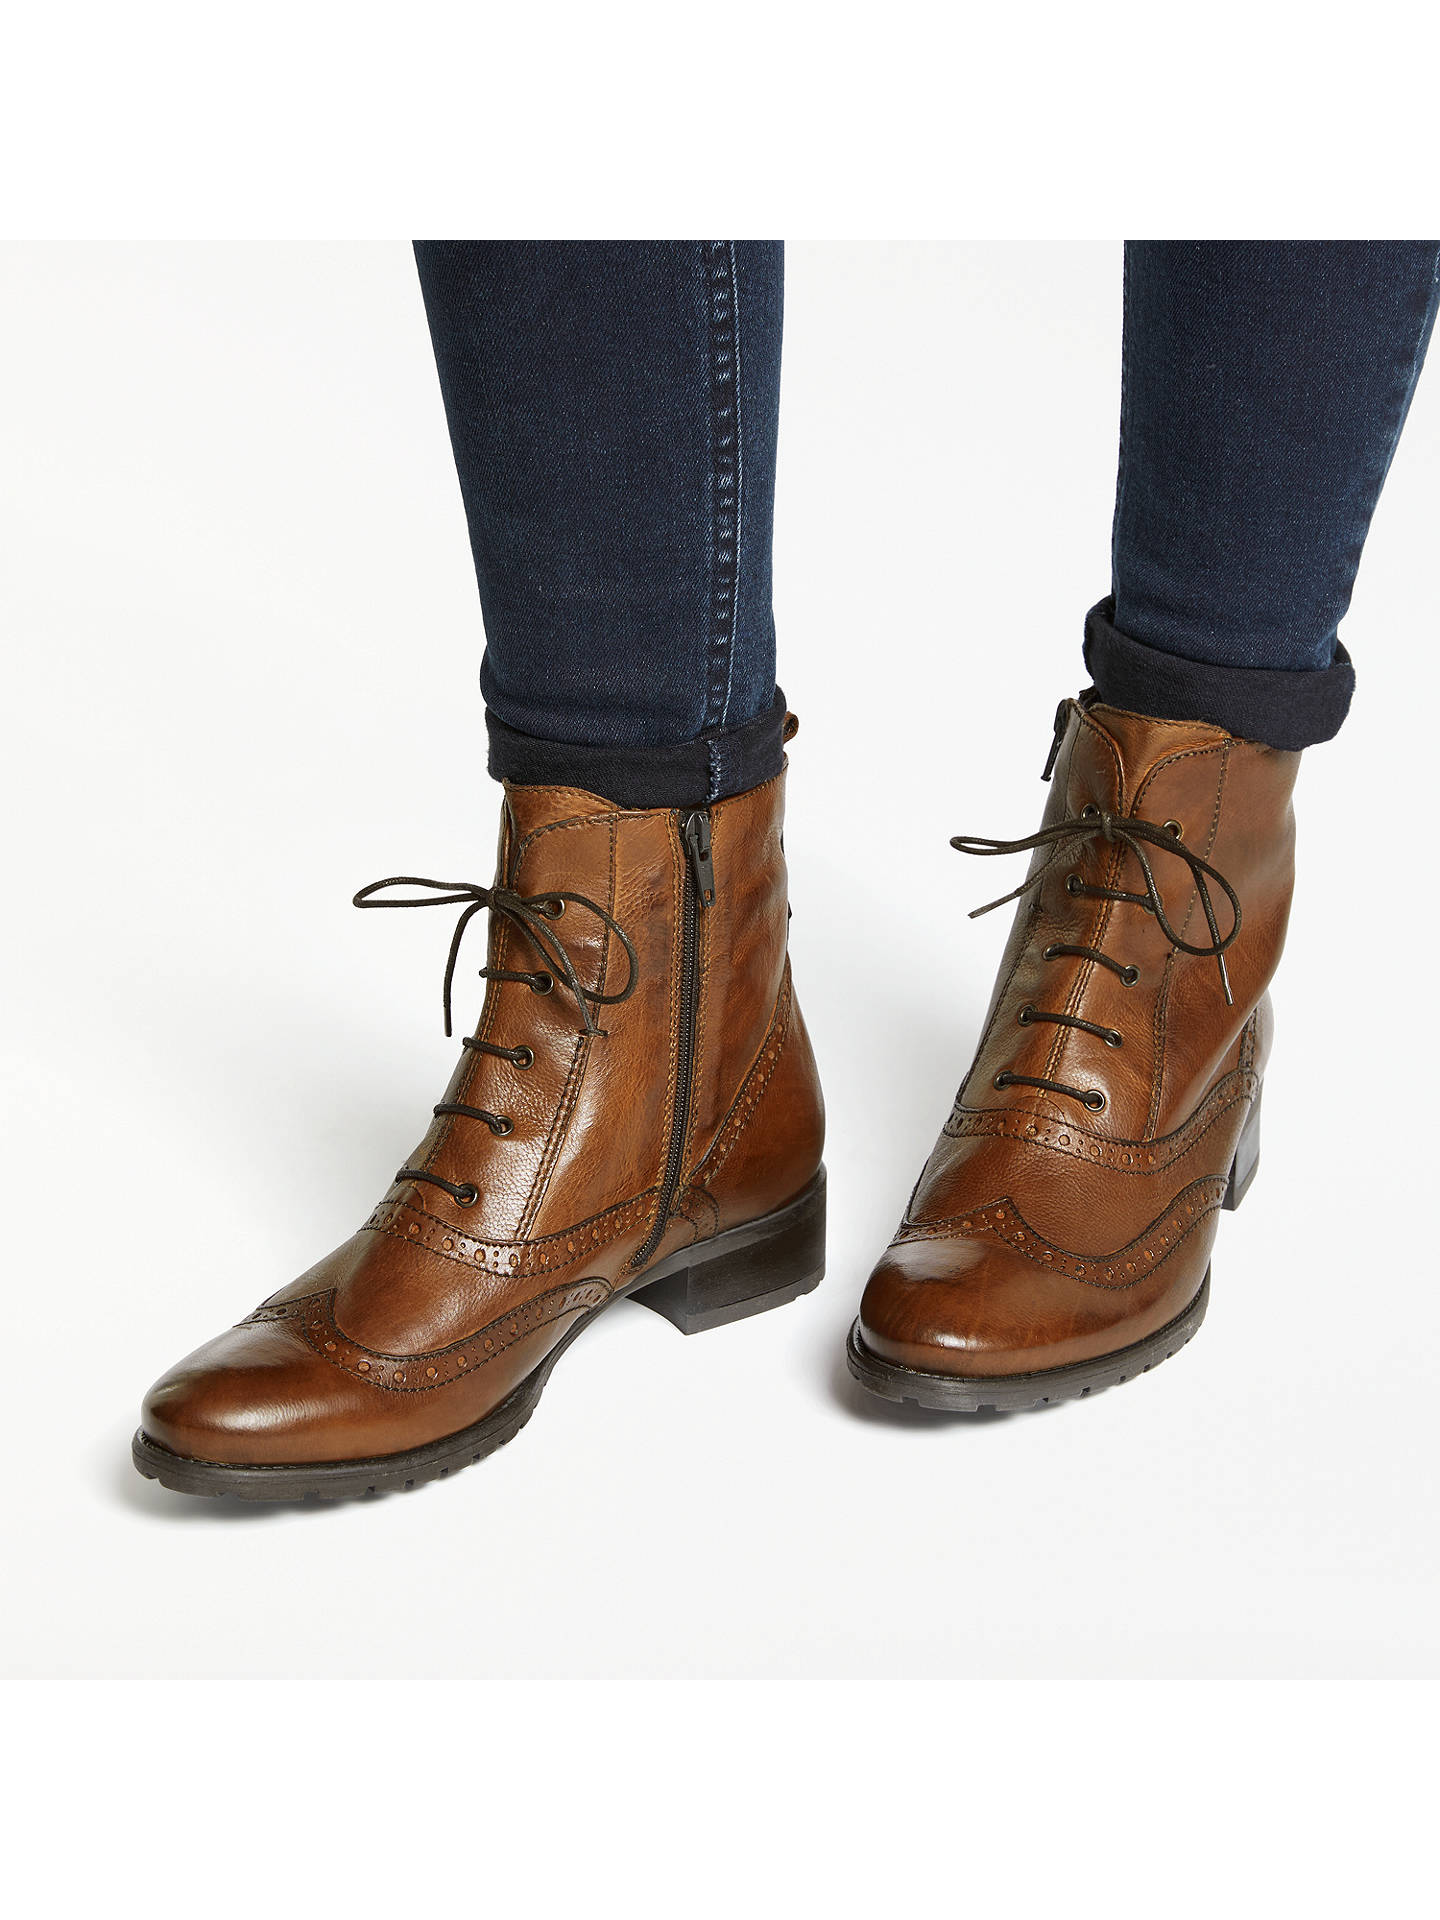 e3caf6b41b2 John Lewis Cambridge Leather Zip Up Ankle Boots at John Lewis   Partners